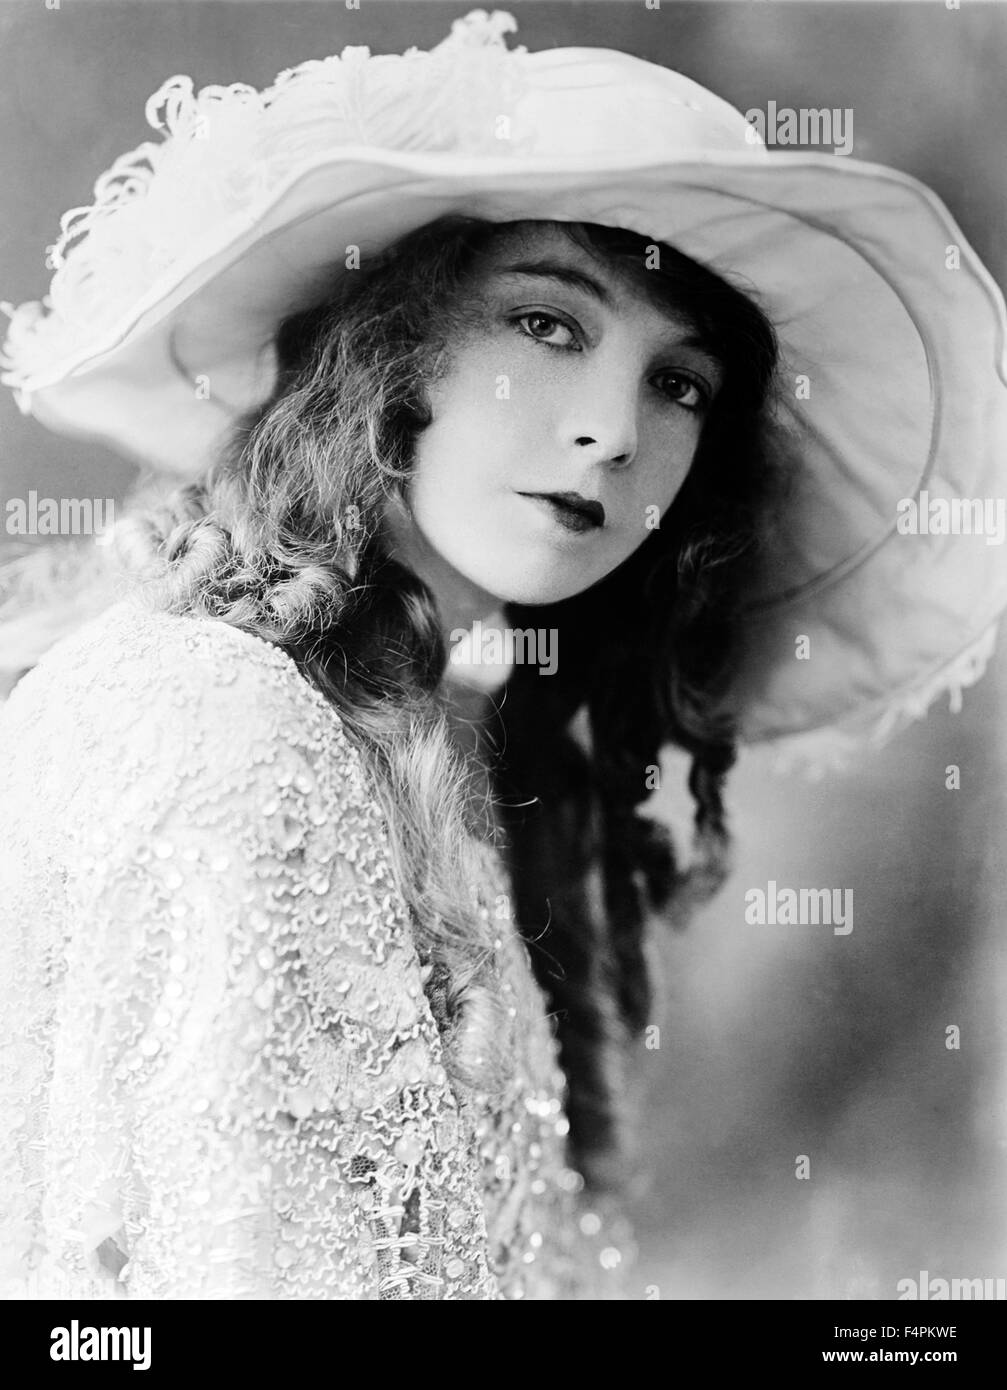 Lillian Gish in the 10's - Stock Image